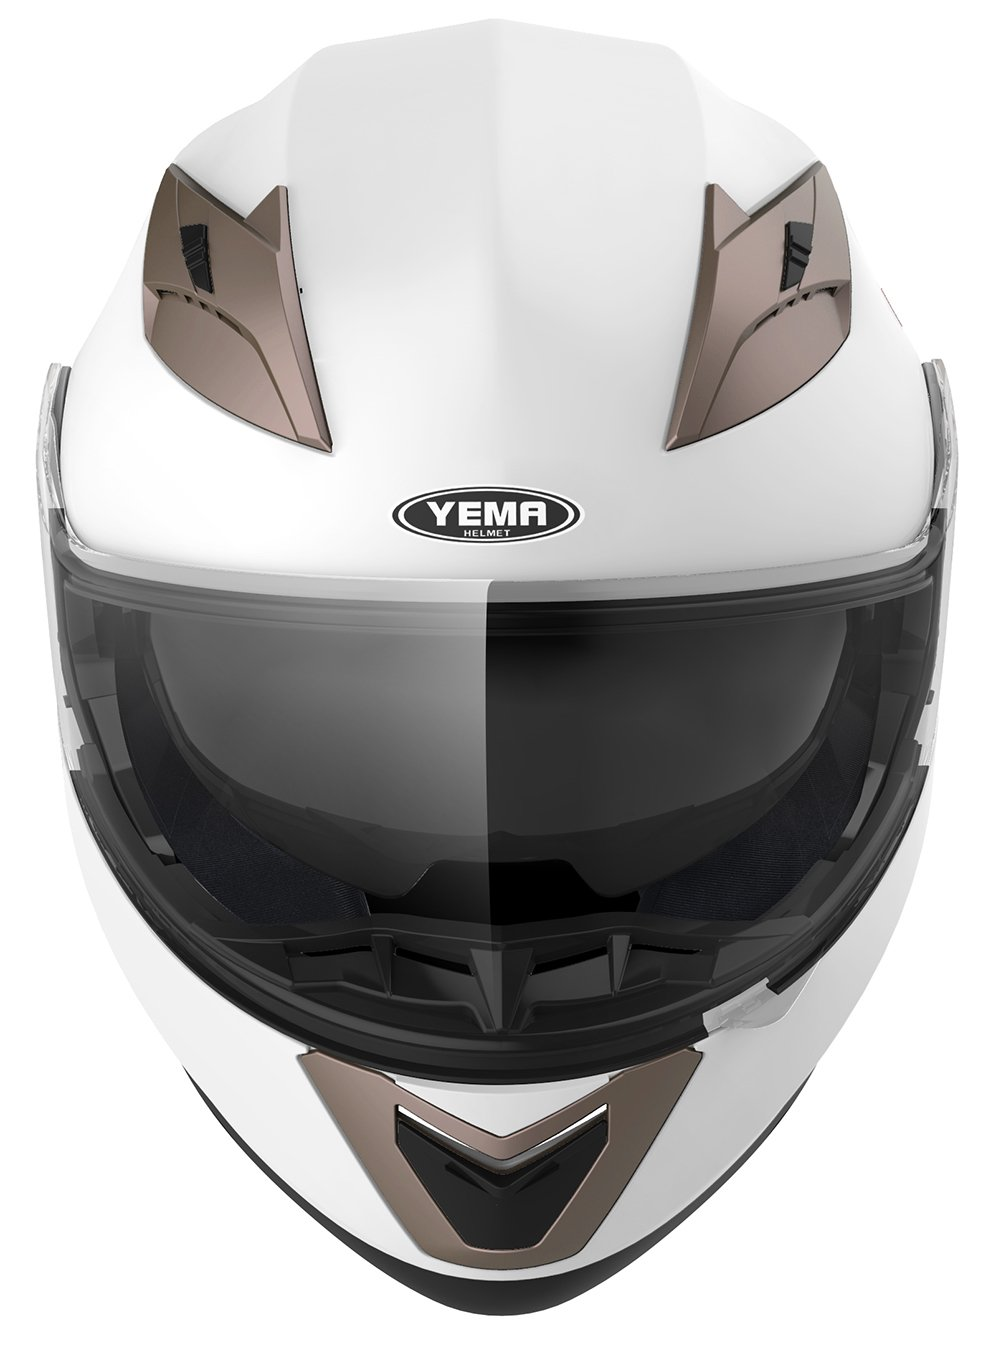 YEMA Helmet Visor Face Shield for YM-925 and YM-926 Clear Visor with Pinlock